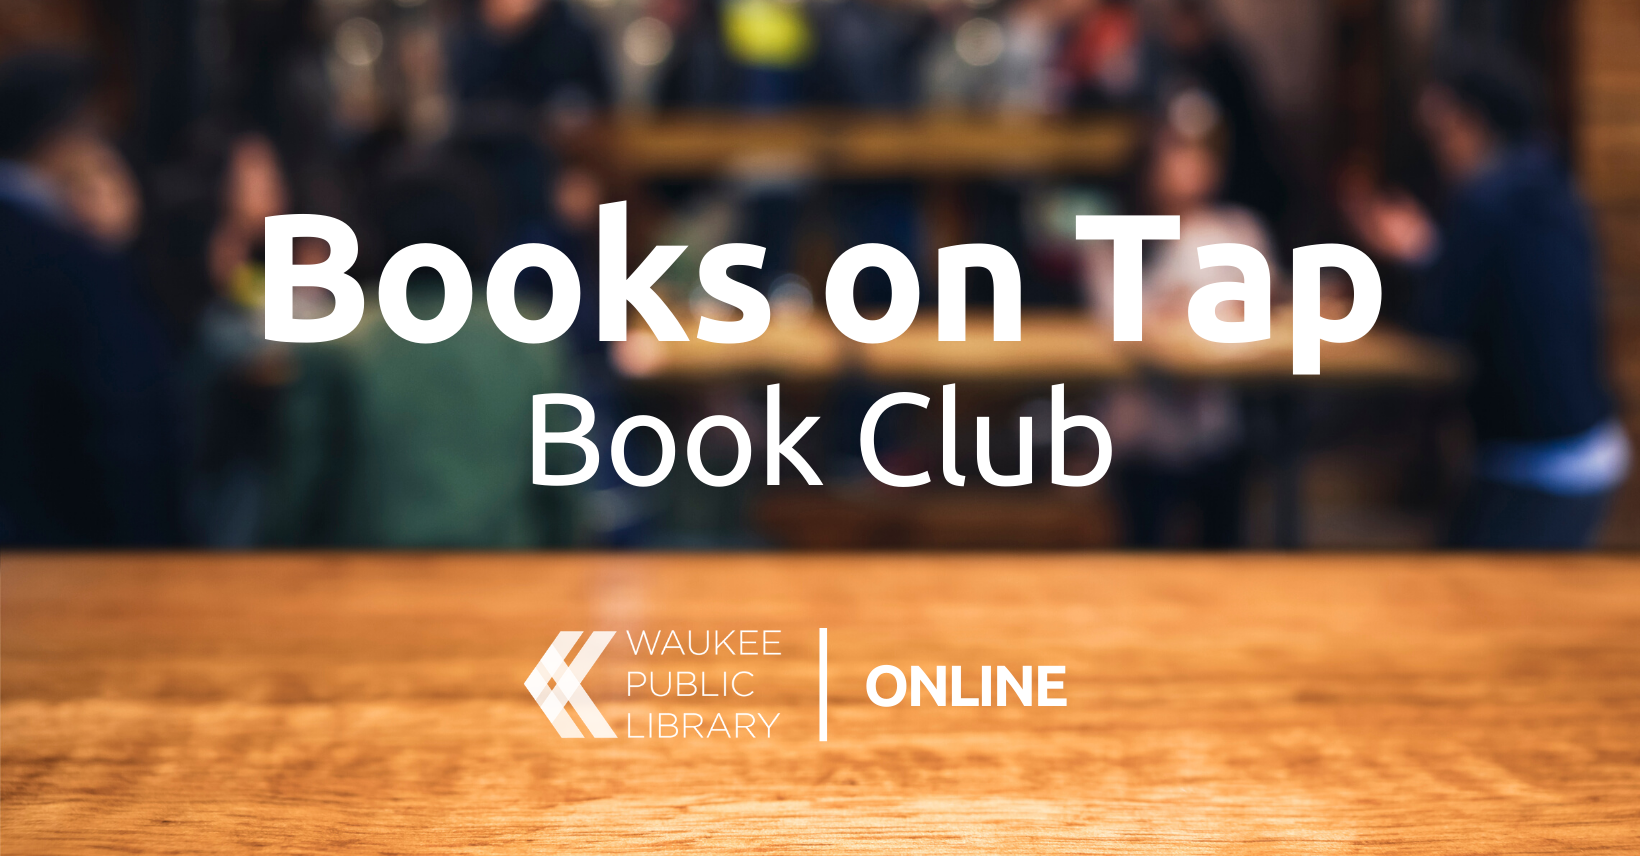 Books on Tap Online